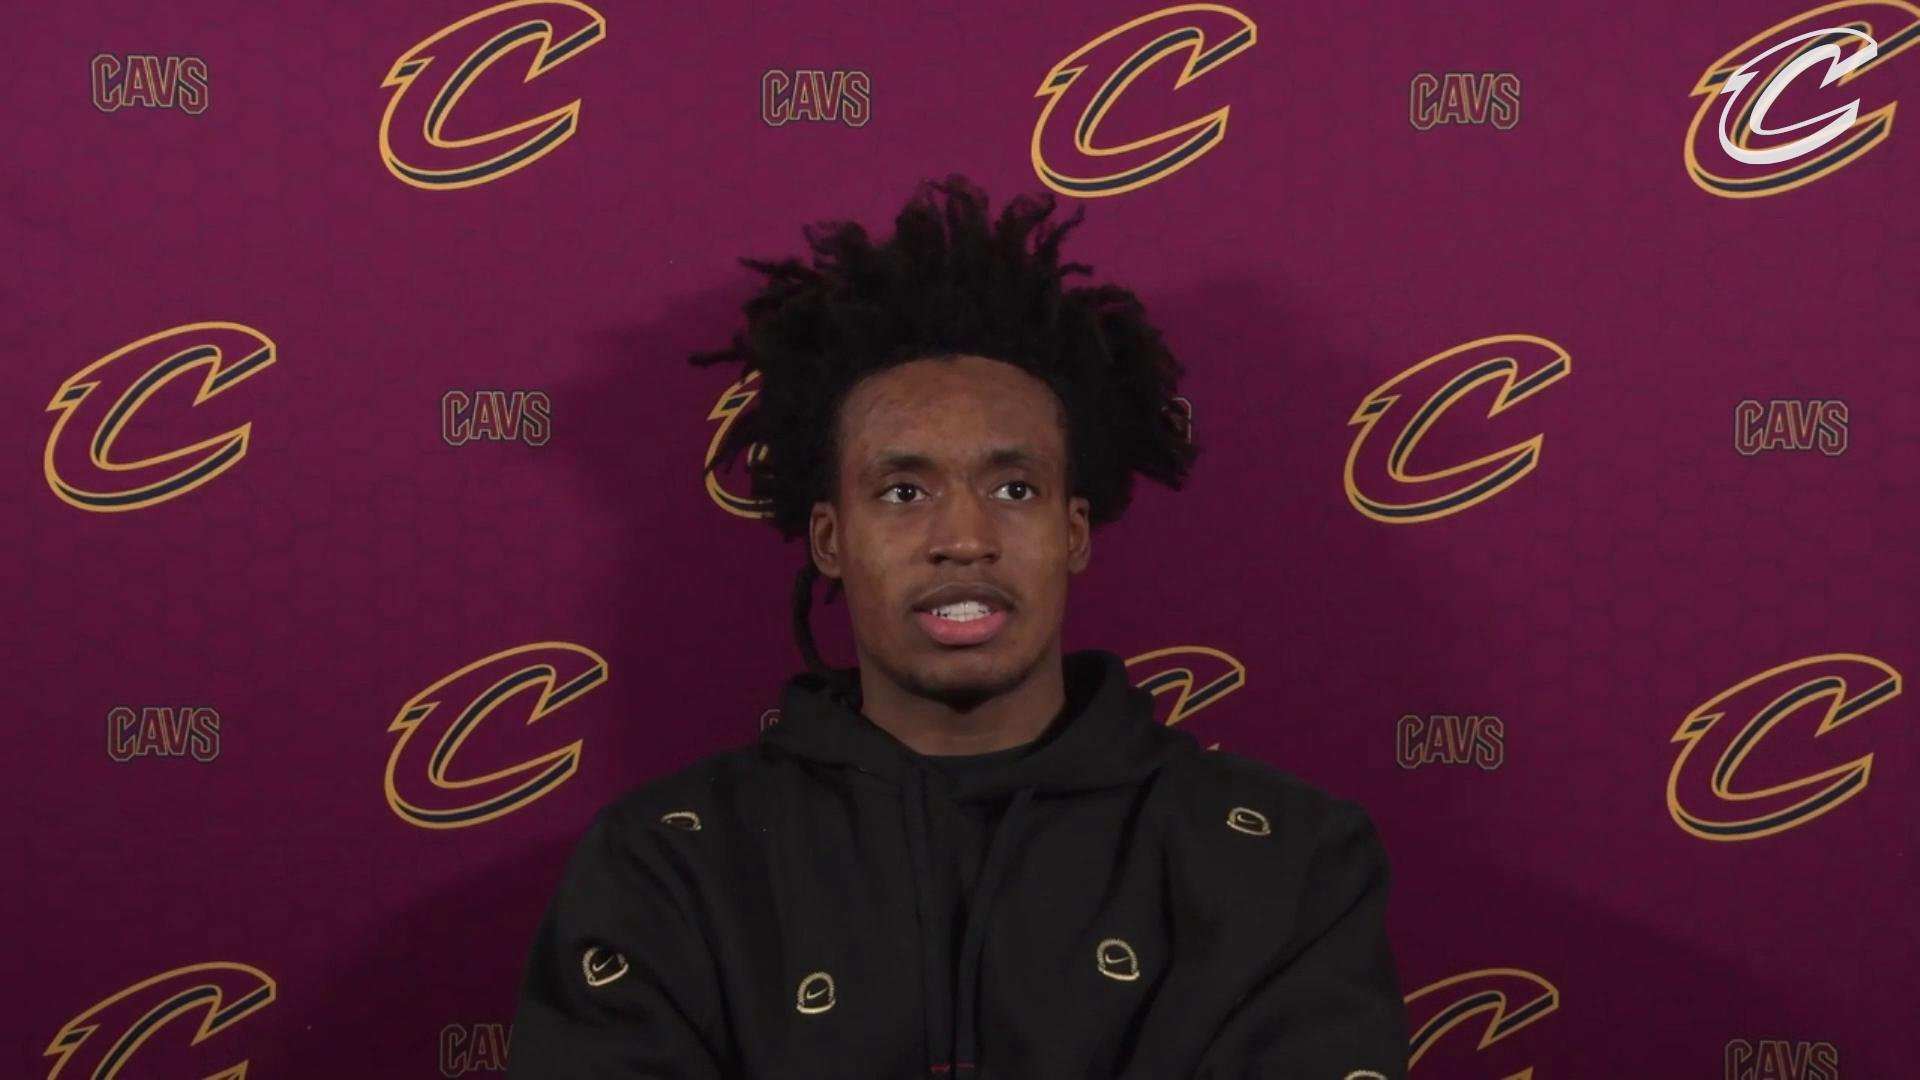 Cavs at Thunder Postgame: Collin Sexton